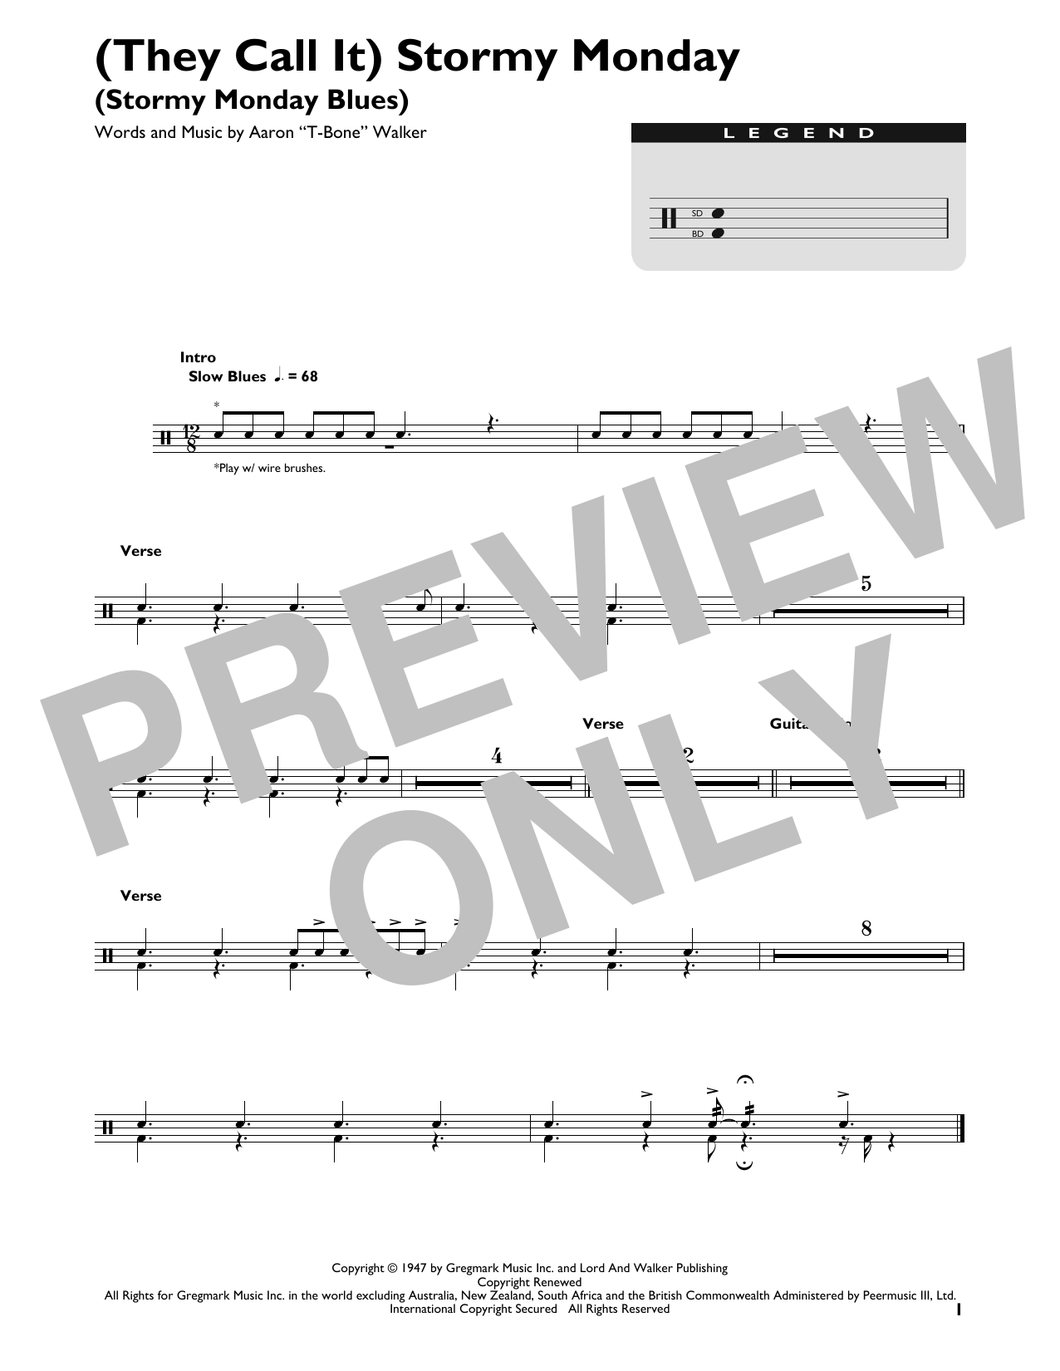 (They Call It) Stormy Monday (Stormy Monday Blues) - T-Bone Walker - Full Drum Transcription / Drum Sheet Music - SheetMusicDirect DT